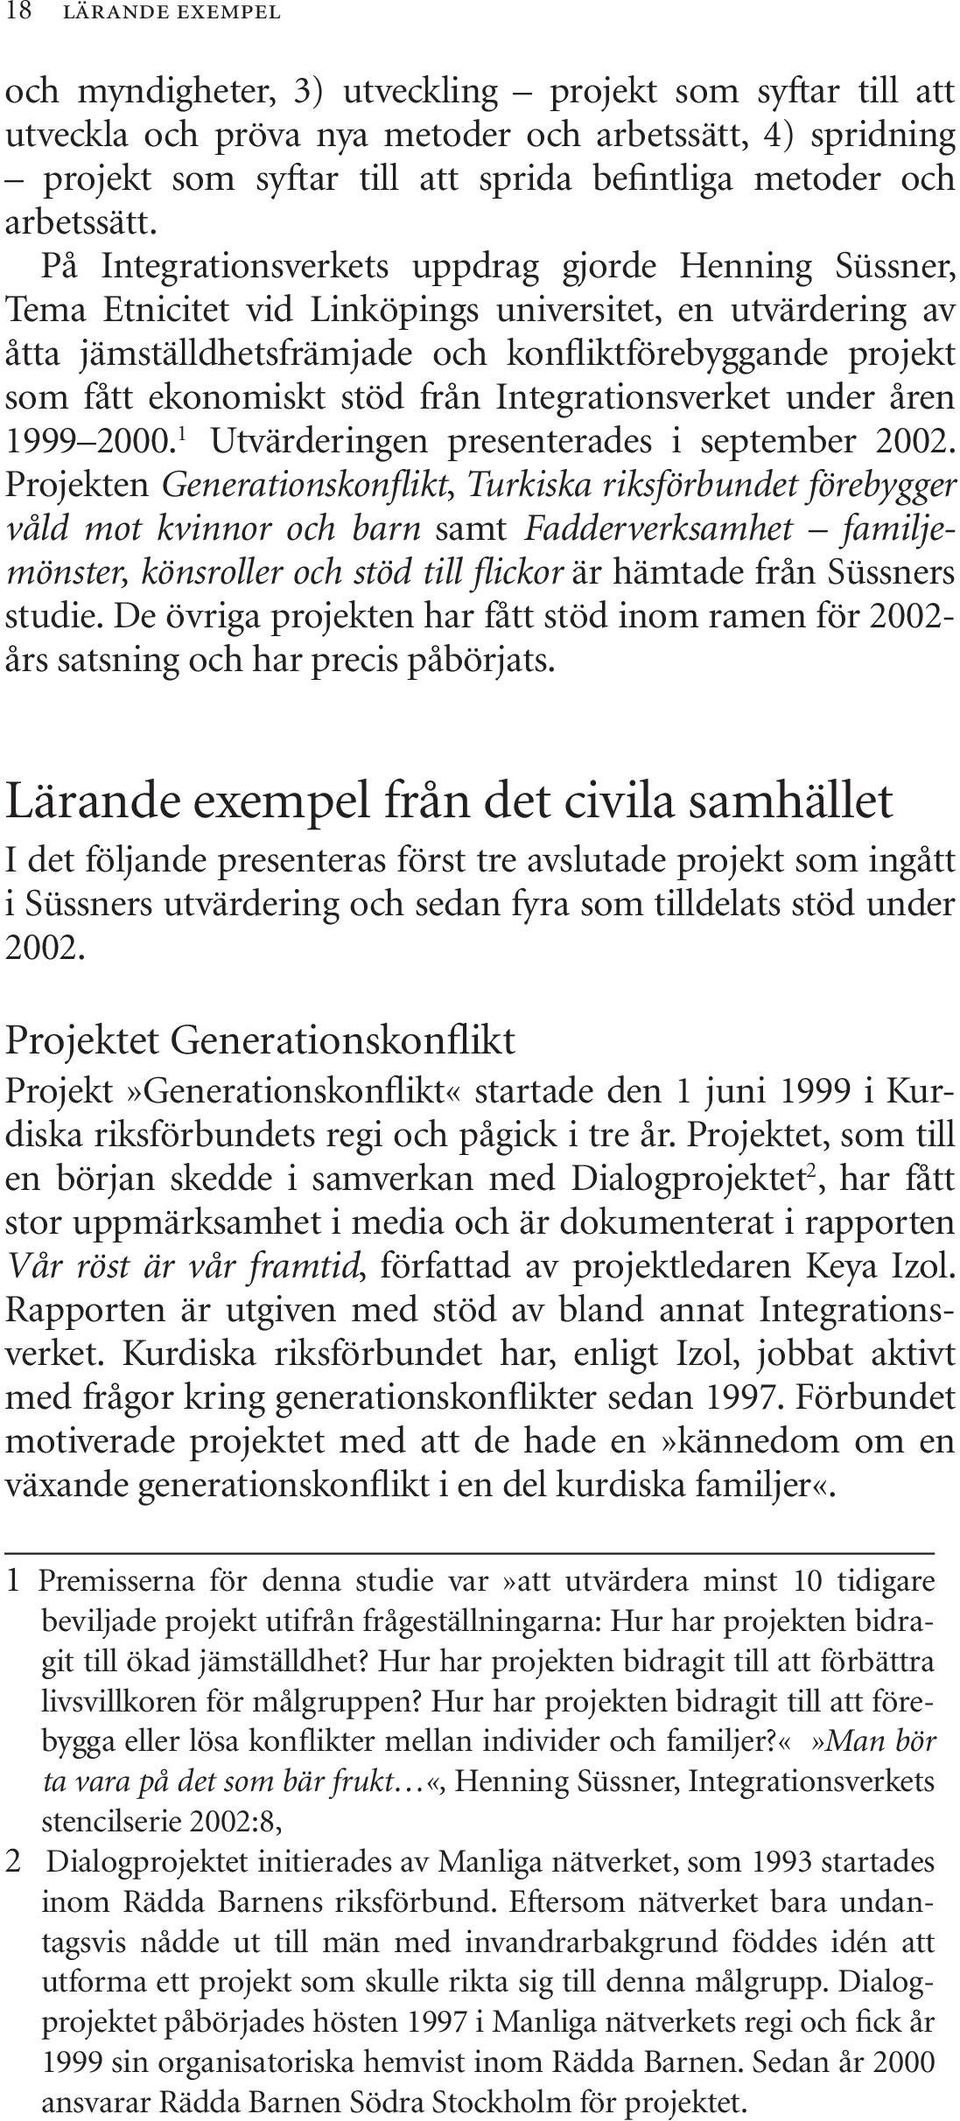 På Integrationsverkets uppdrag gjorde Henning Süssner, Tema Etnicitet vid Linköpings universitet, en utvärdering av åtta jämställdhetsfrämjade och konfliktförebyggande projekt som fått ekonomiskt